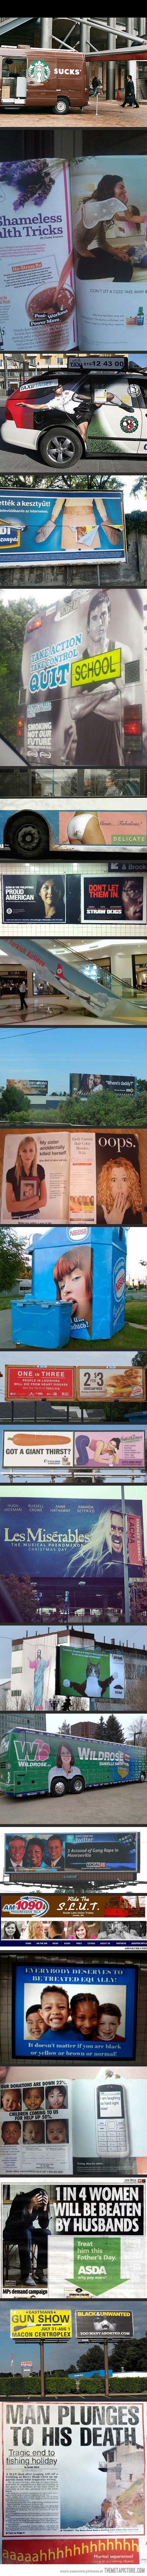 23 Terrible Advertising Placements…lol